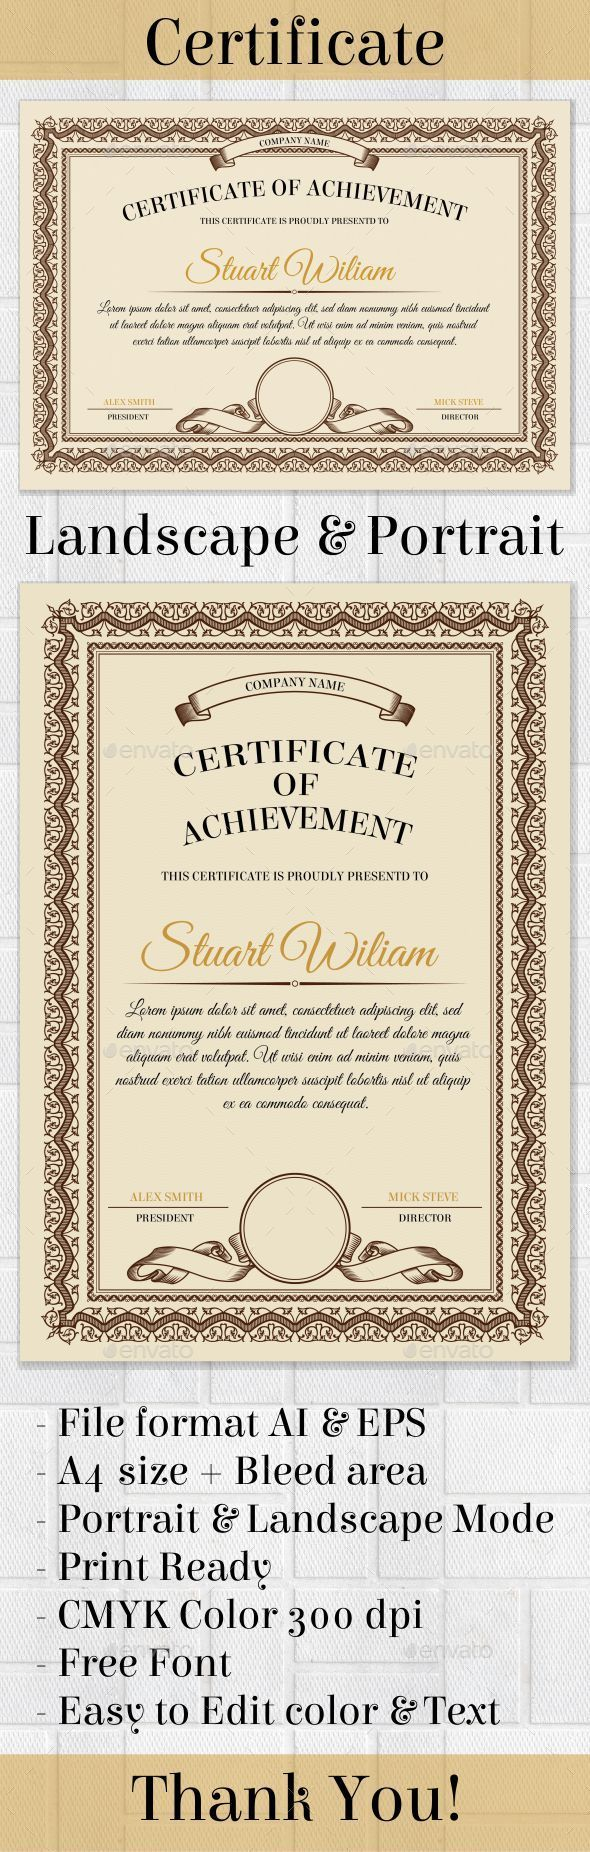 Certificate template certificate template and certificate design certificate template file format ai eps size bleed area portrait landscape mode print ready cmyk color 300 dpi easy to edit color text yadclub Gallery